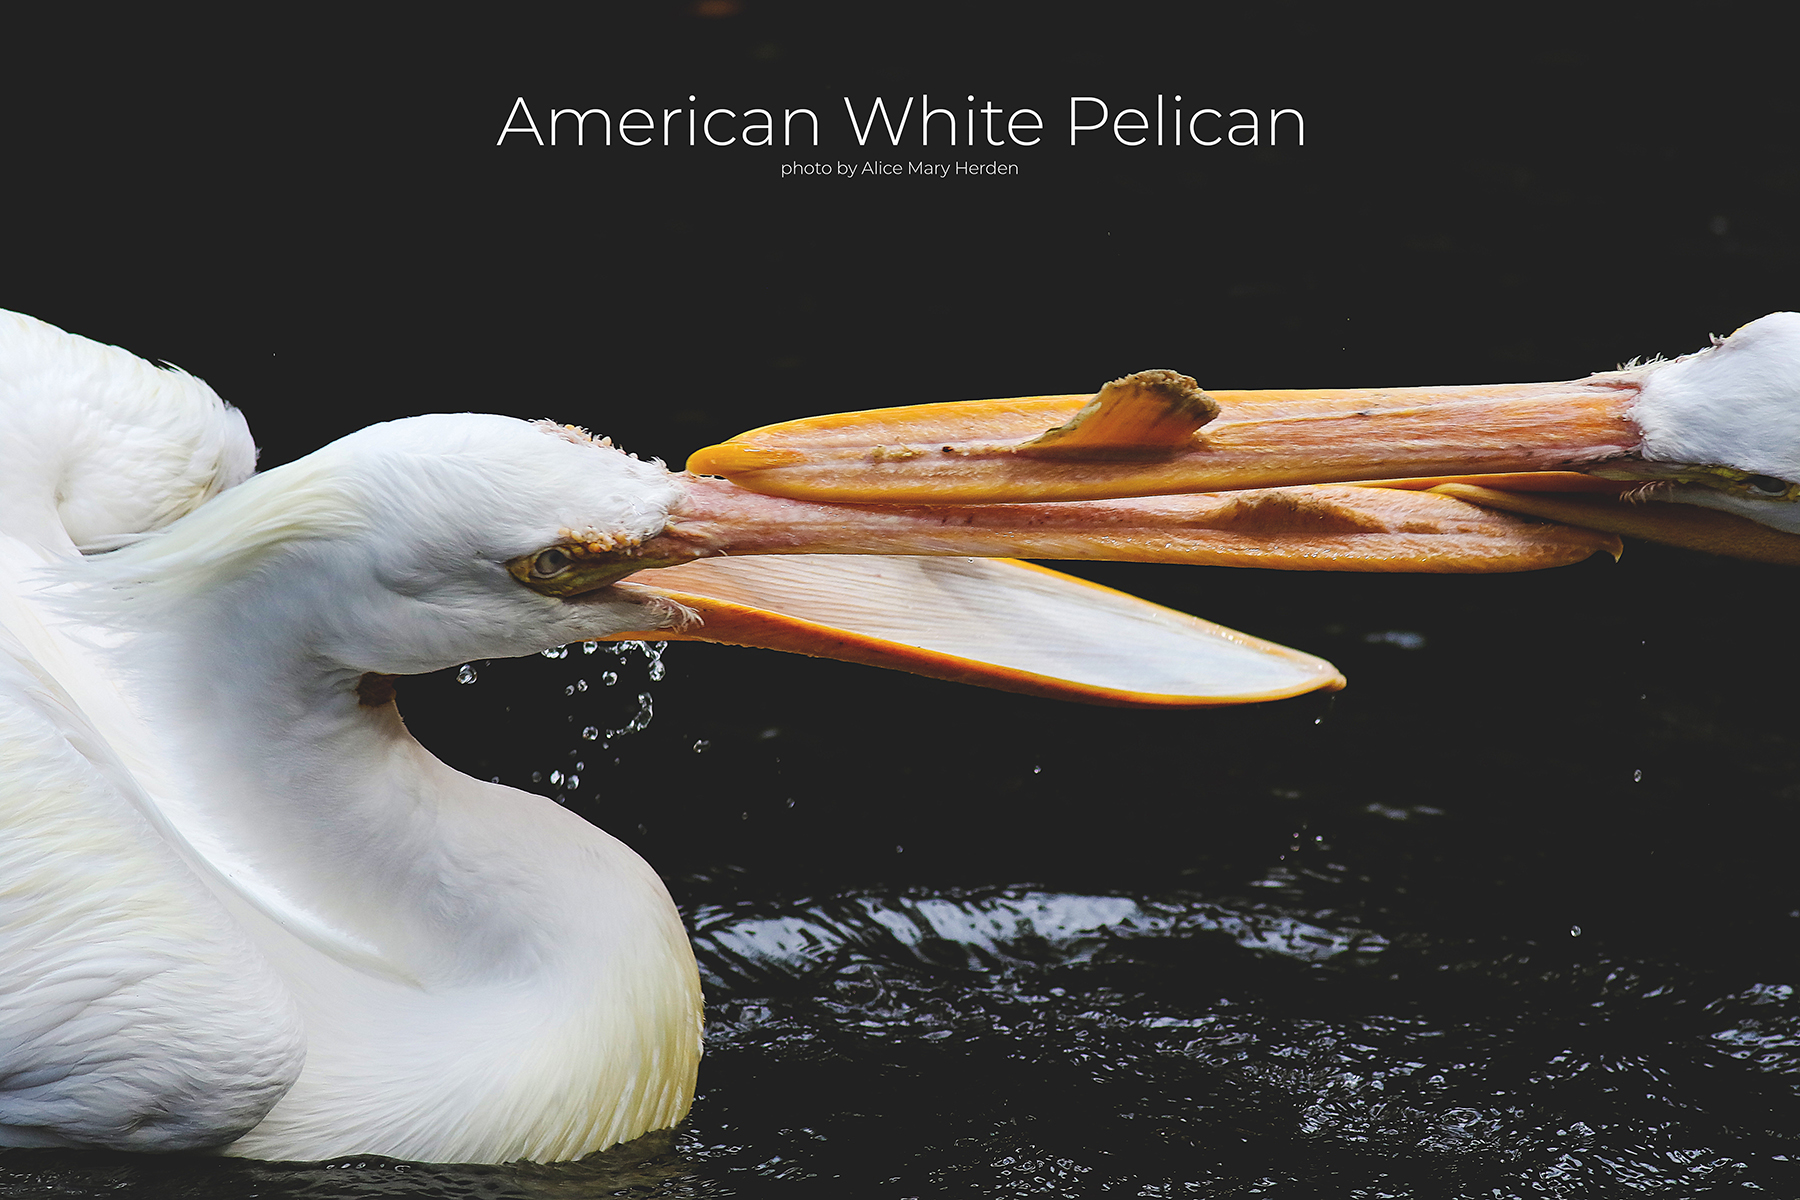 Wild Seabirds- The American White Pelican